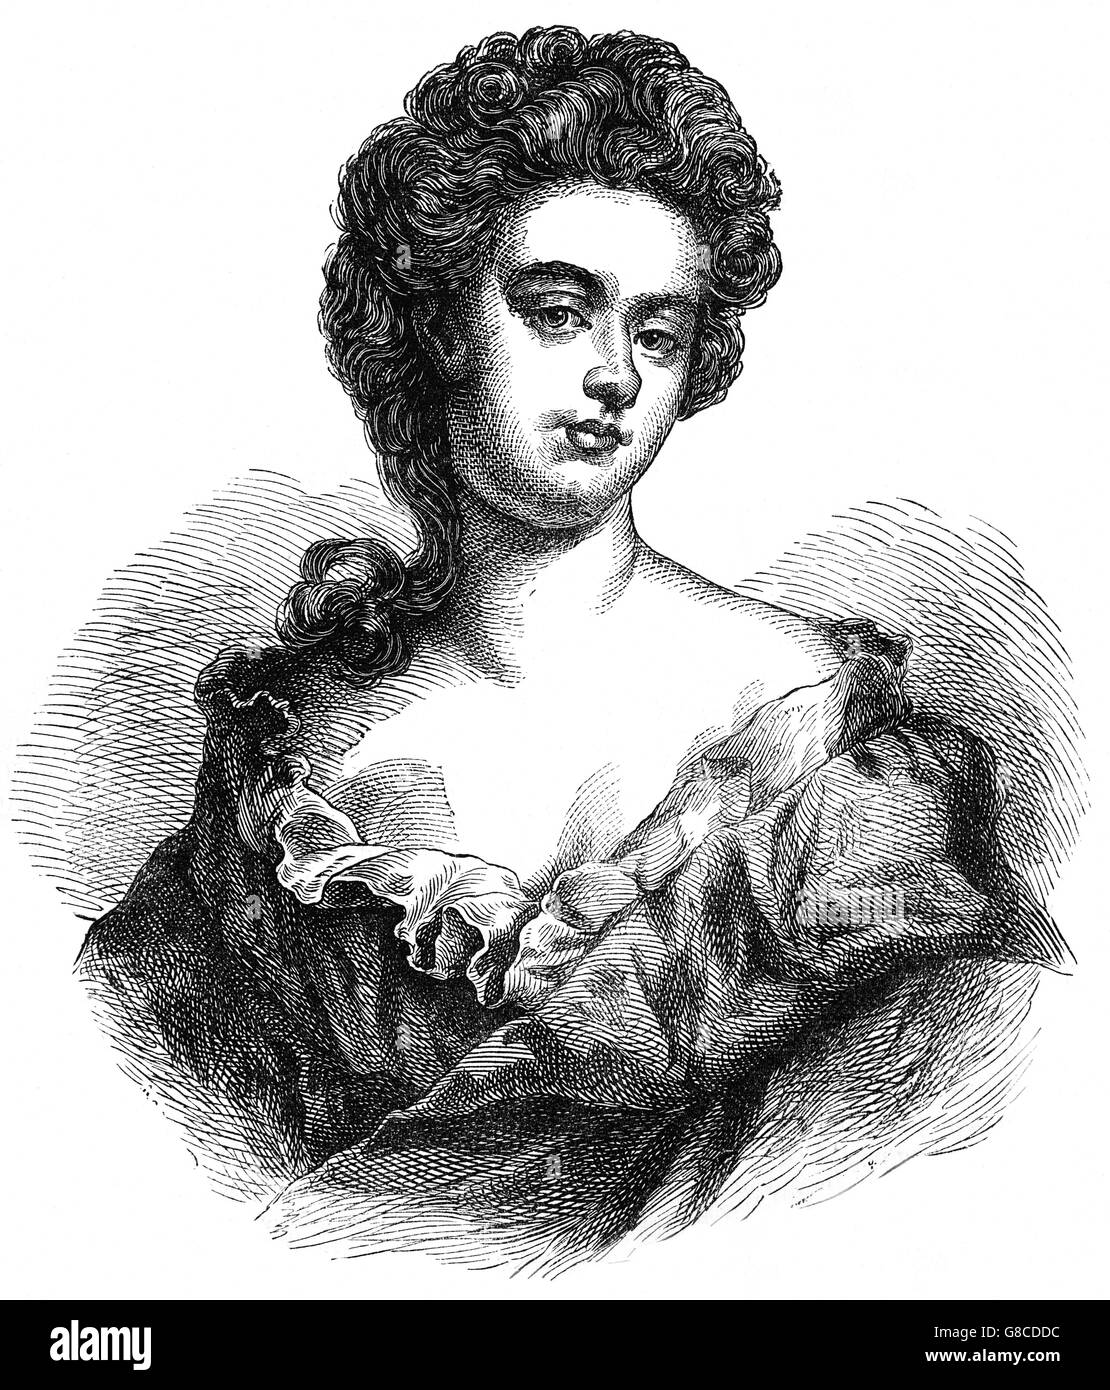 Sarah Churchill, Duchess of Marlborough rose to be one of the most influential women of her time through her close - Stock Image